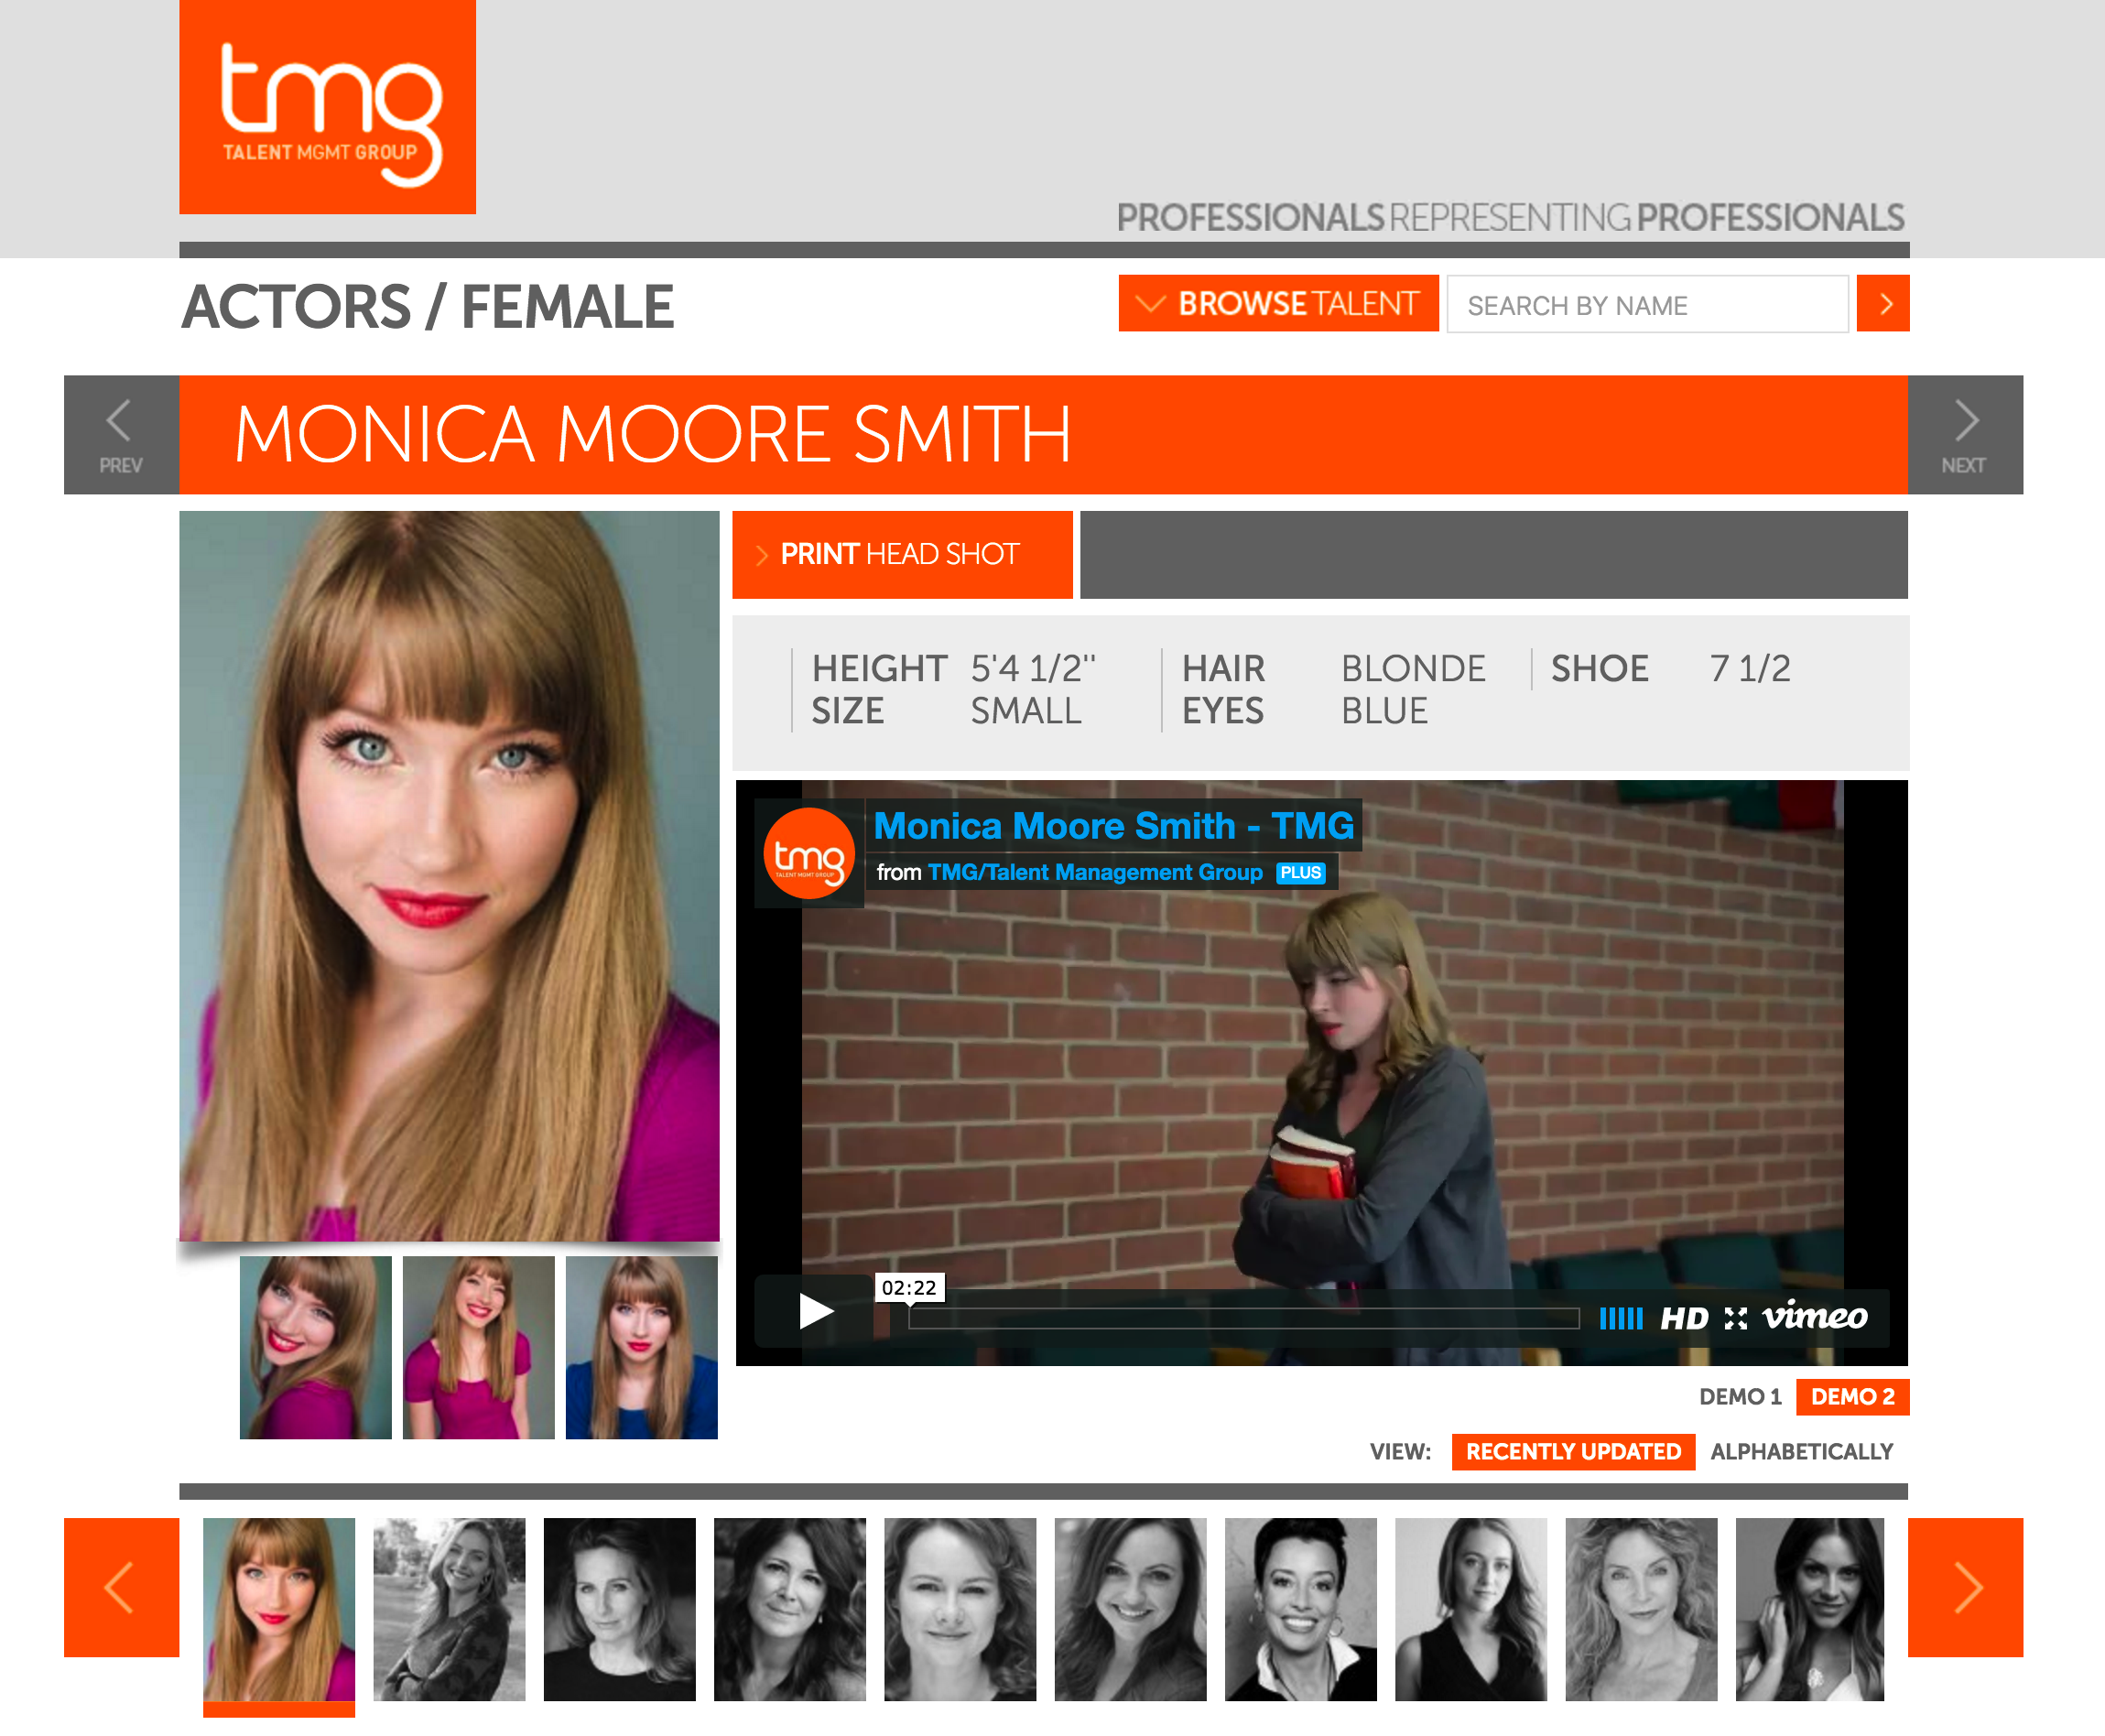 Monica Moore Smith - Talent Management Group - TMG